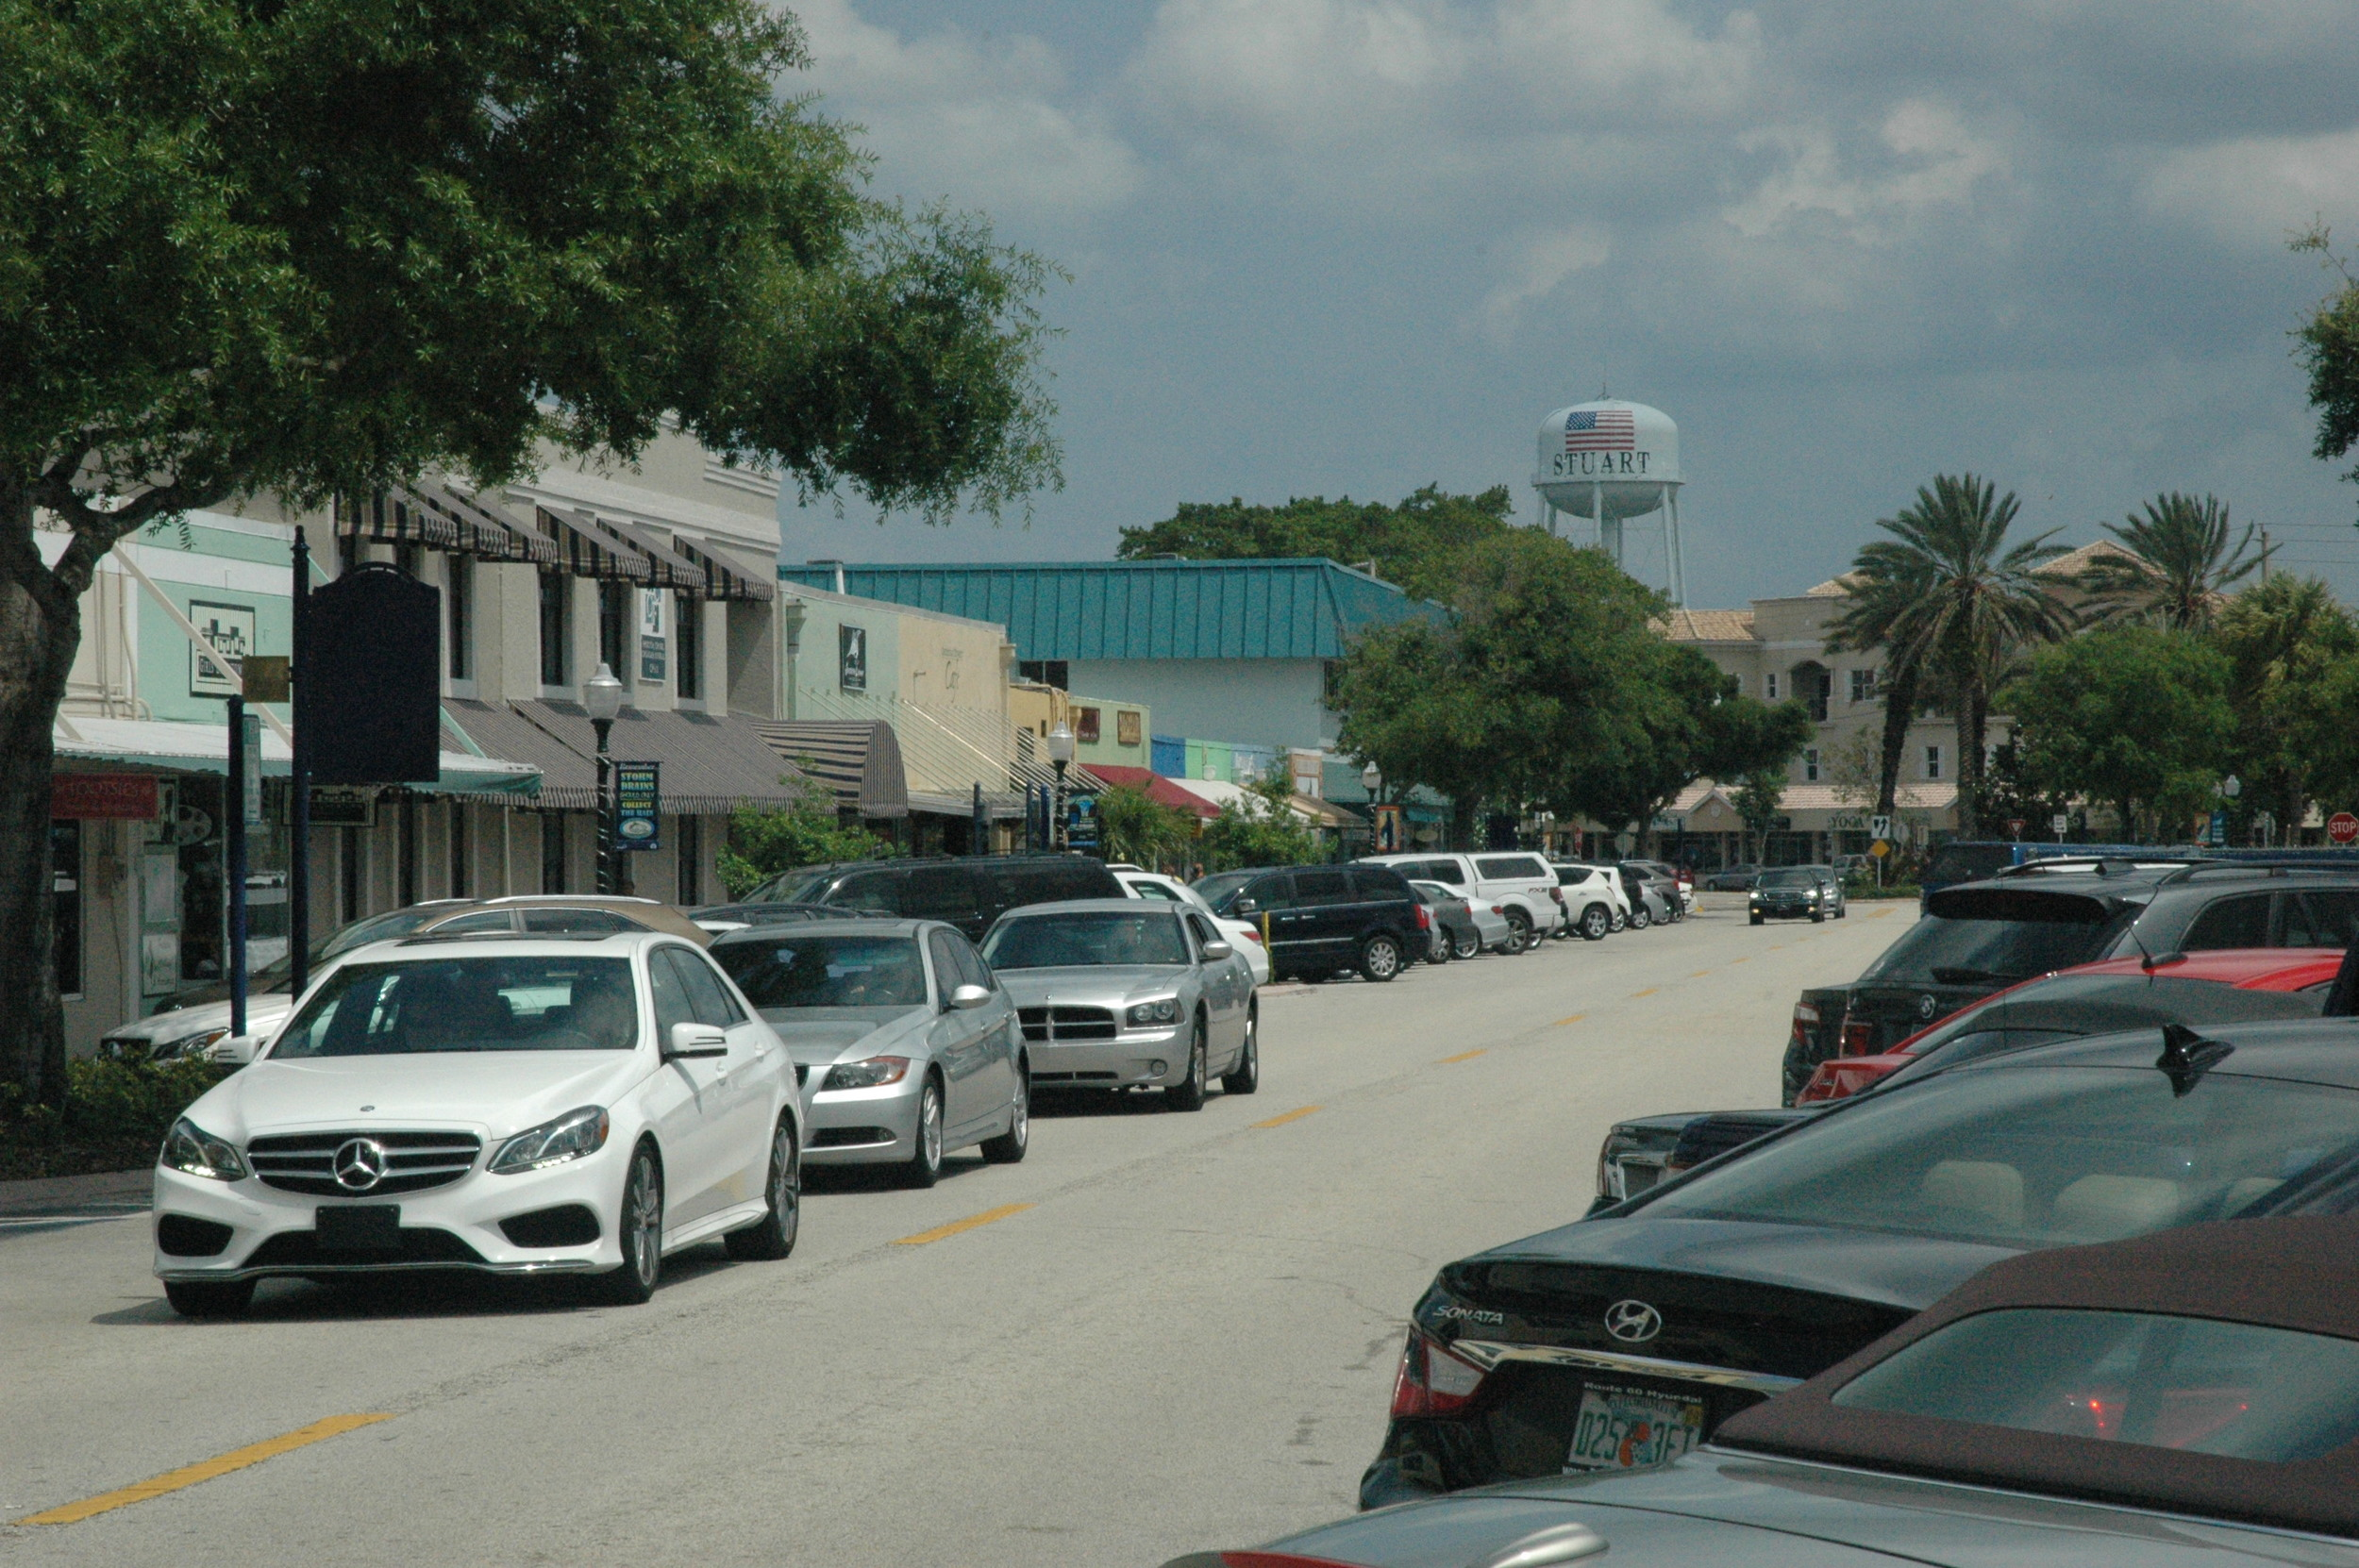 Cars hunting for parking spaces in Stuart, Florida.